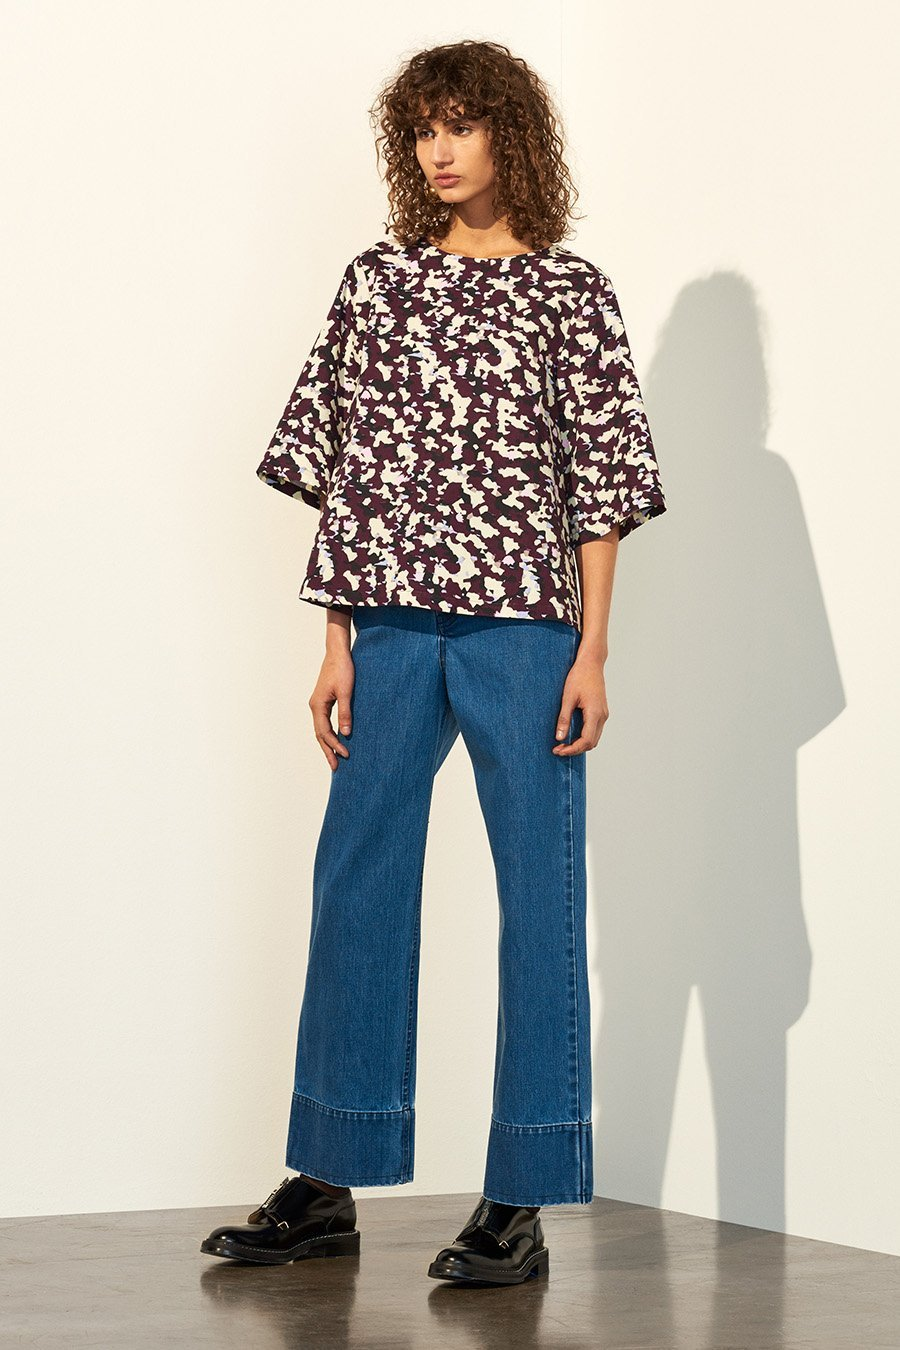 An ethical, well-priced, super-cute top. Image:  Kowtow